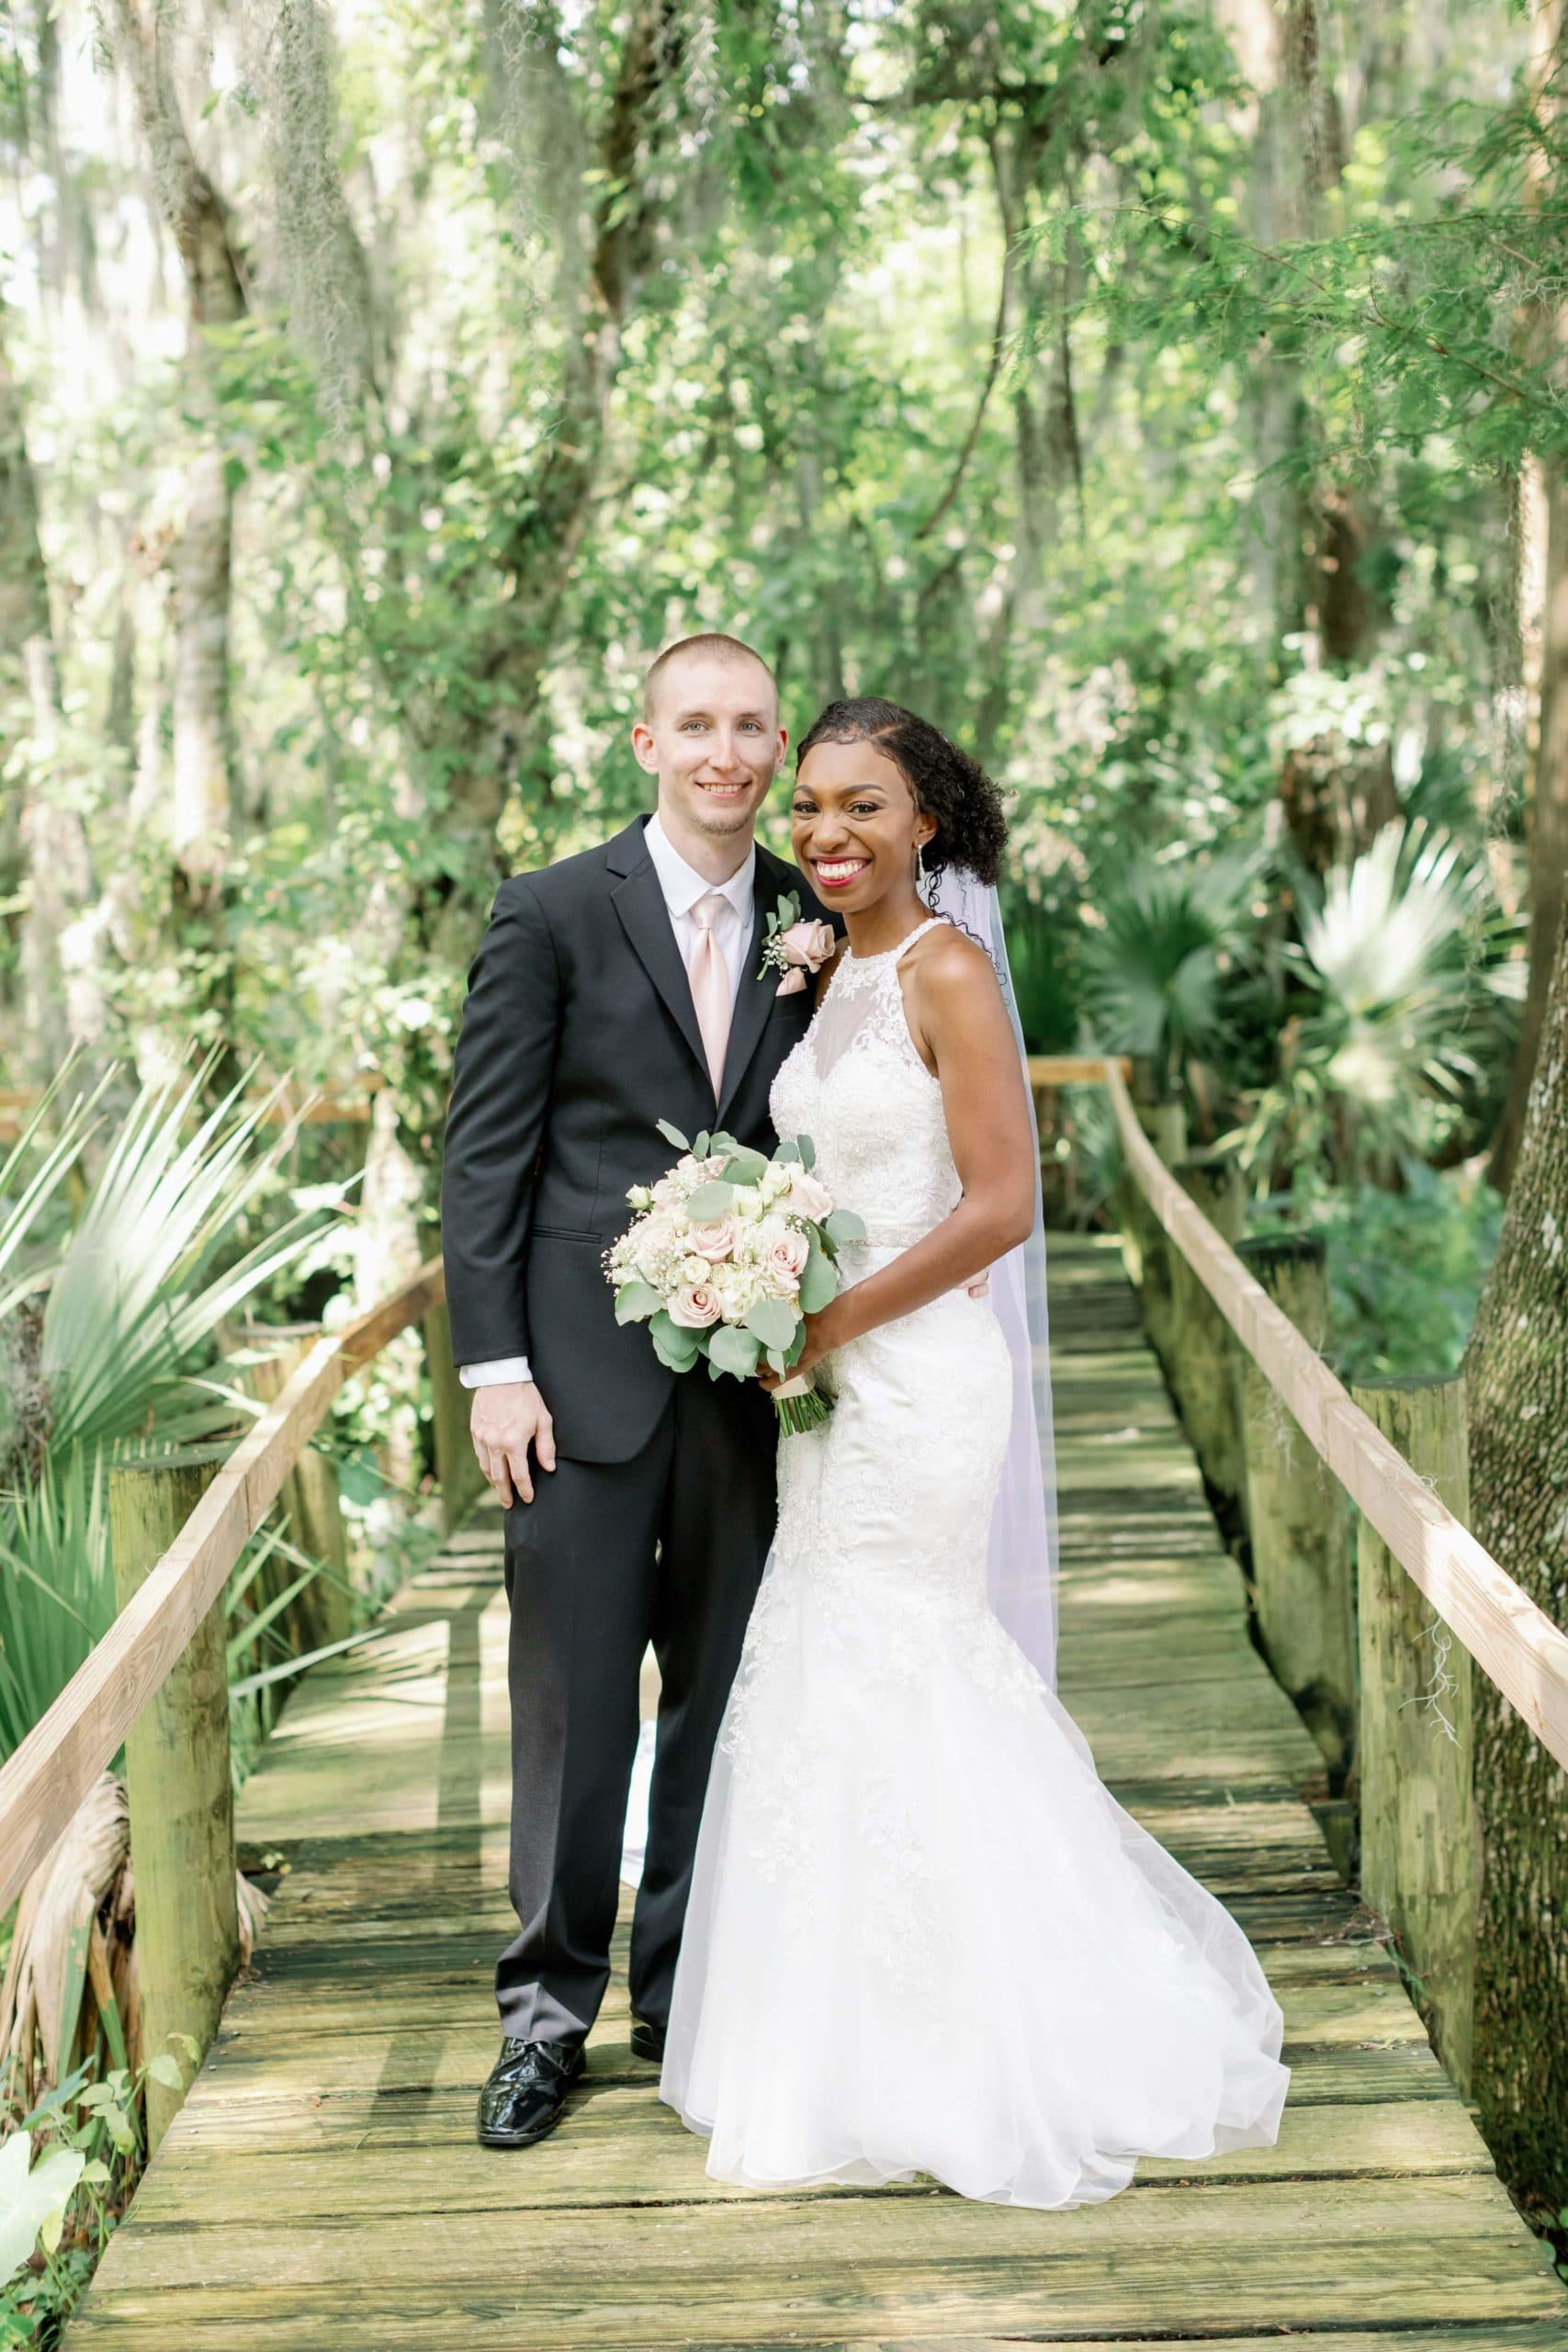 Bride and Groom on Wooden Lakeside Boardwalk for Brunch Wedding